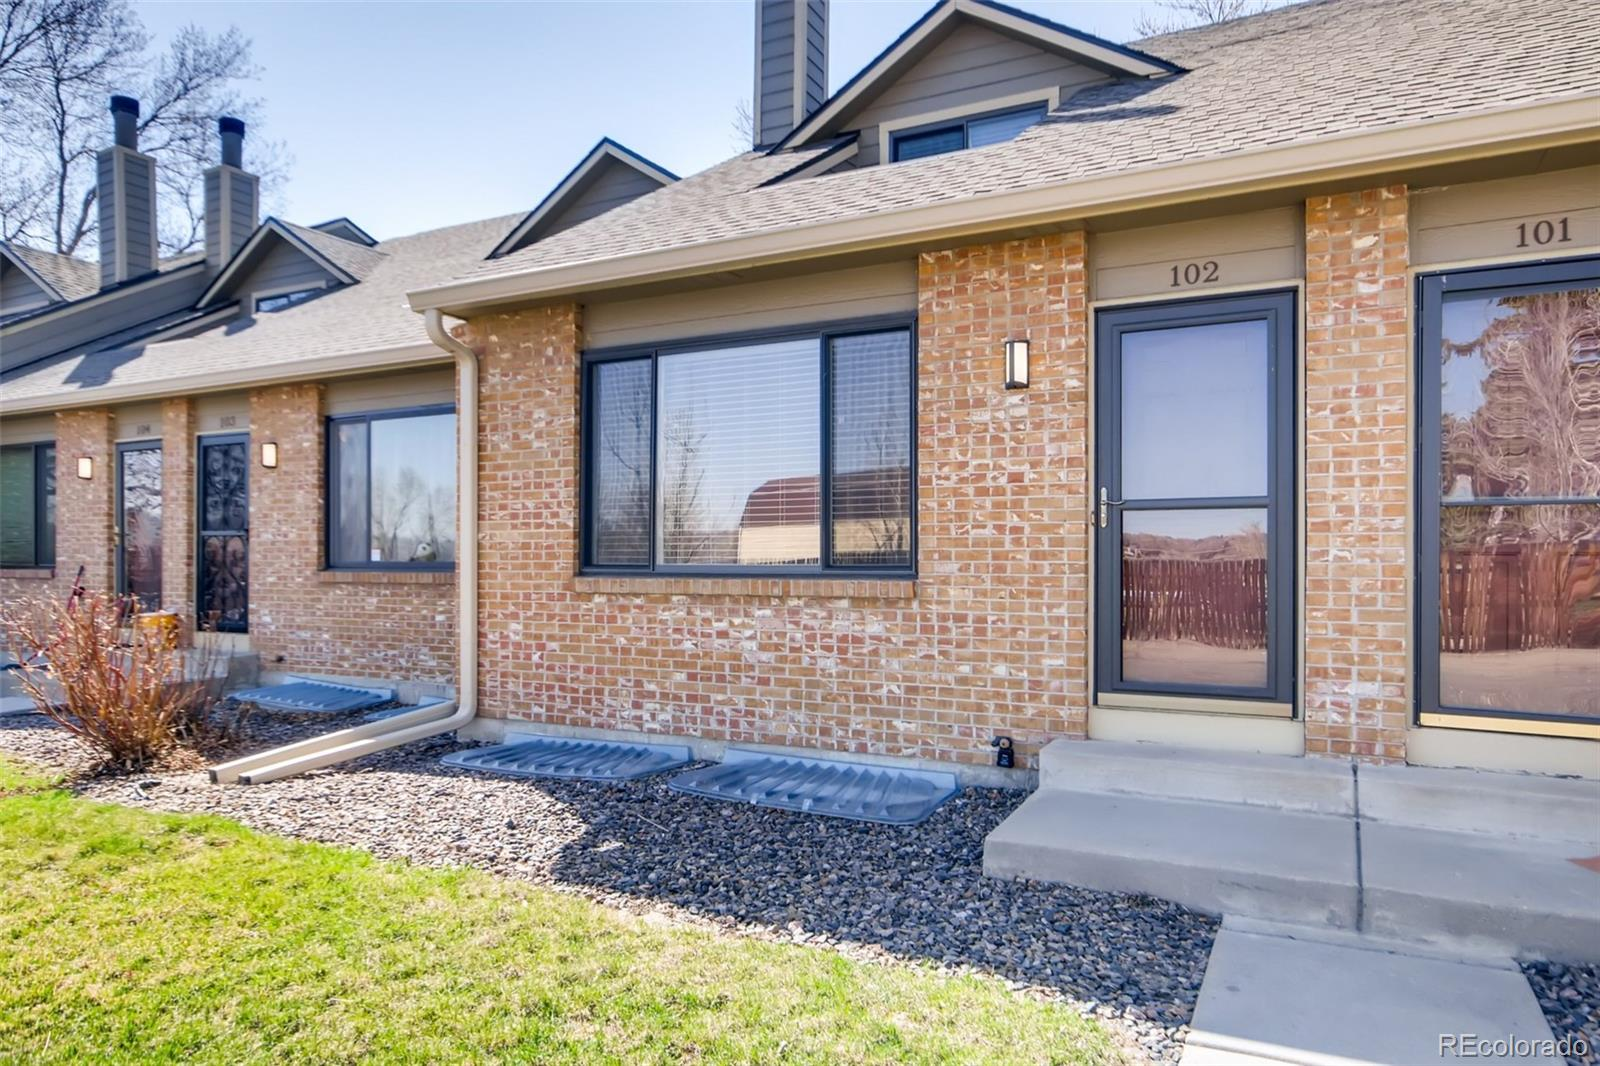 Pre-sale Inspection report available.  3D matterhorn tour at https://listing.virtuance.com/listing/10694-w-63rd-pl-102-arvada-colorado/ Completely UPDATED and ready to move in! NEW KITCHEN with slab granite and glass backsplash, BRAND NEW carpet, NEW paint, all bathrooms updated with 2 bedrooms/ 1 bathroom on upper level and 1 bedroom/ 1 bathroom in the basement (non conforming). All appliances included, plus washer & dryer, and fenced PRIVATE patio (1 pet per HOA allowed), central A/C and 2 reserved parking spaces included.  This is the home you've been waiting to make yours!